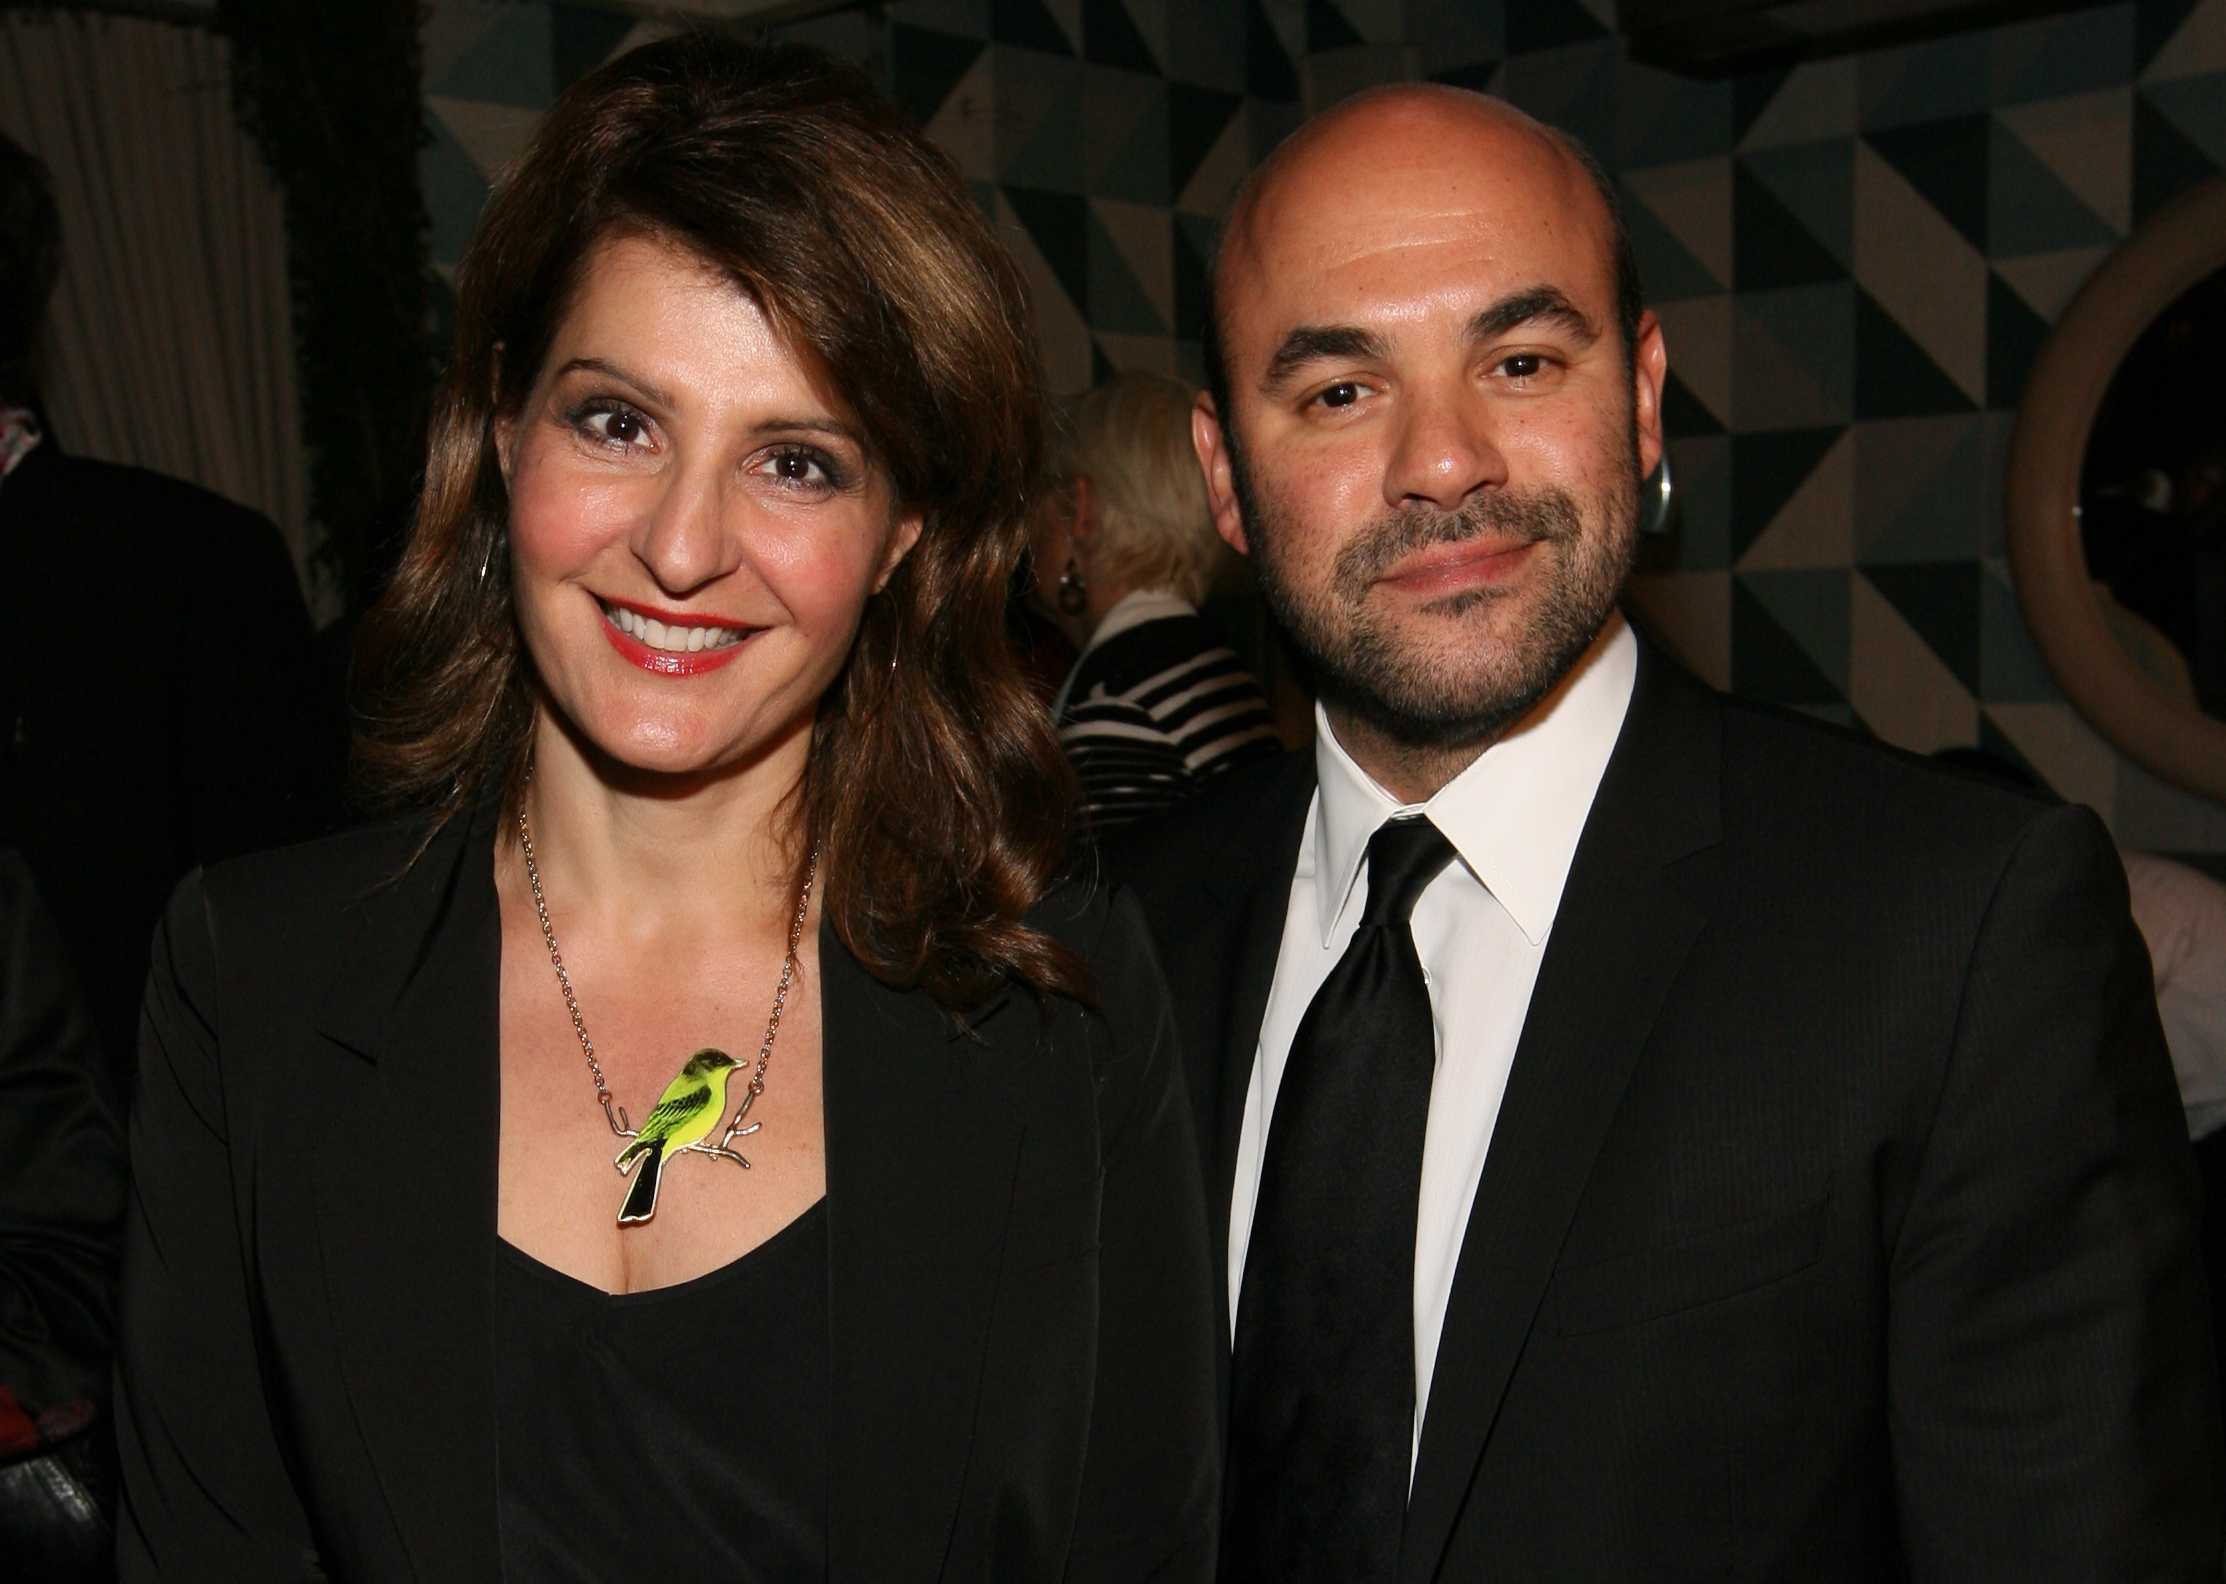 Nia_Vardalos_and_Ian_Gomez